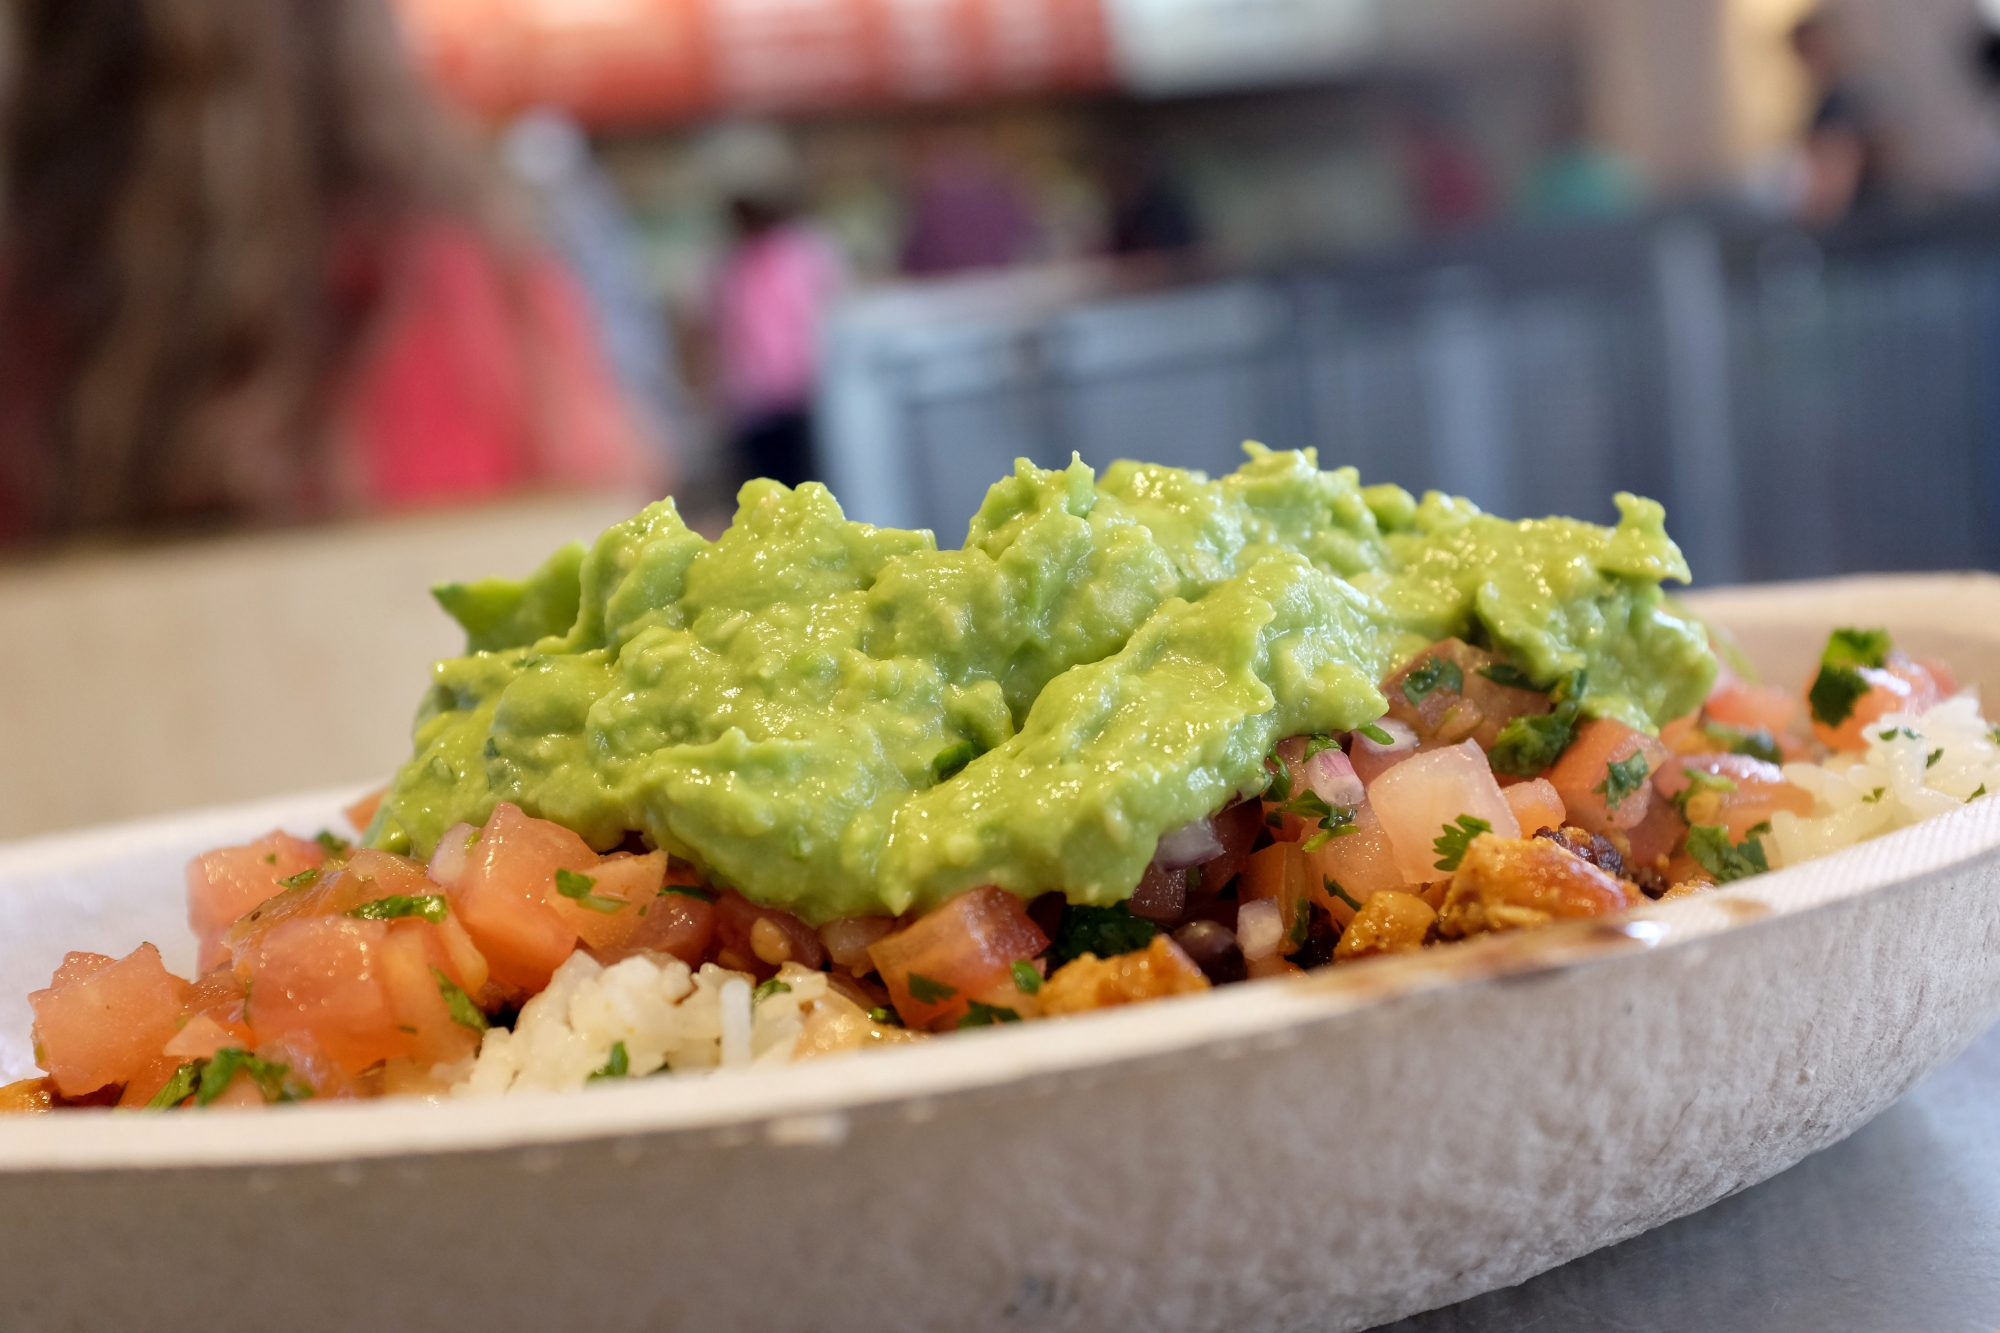 Getty Chipotle Guac 7/31/19